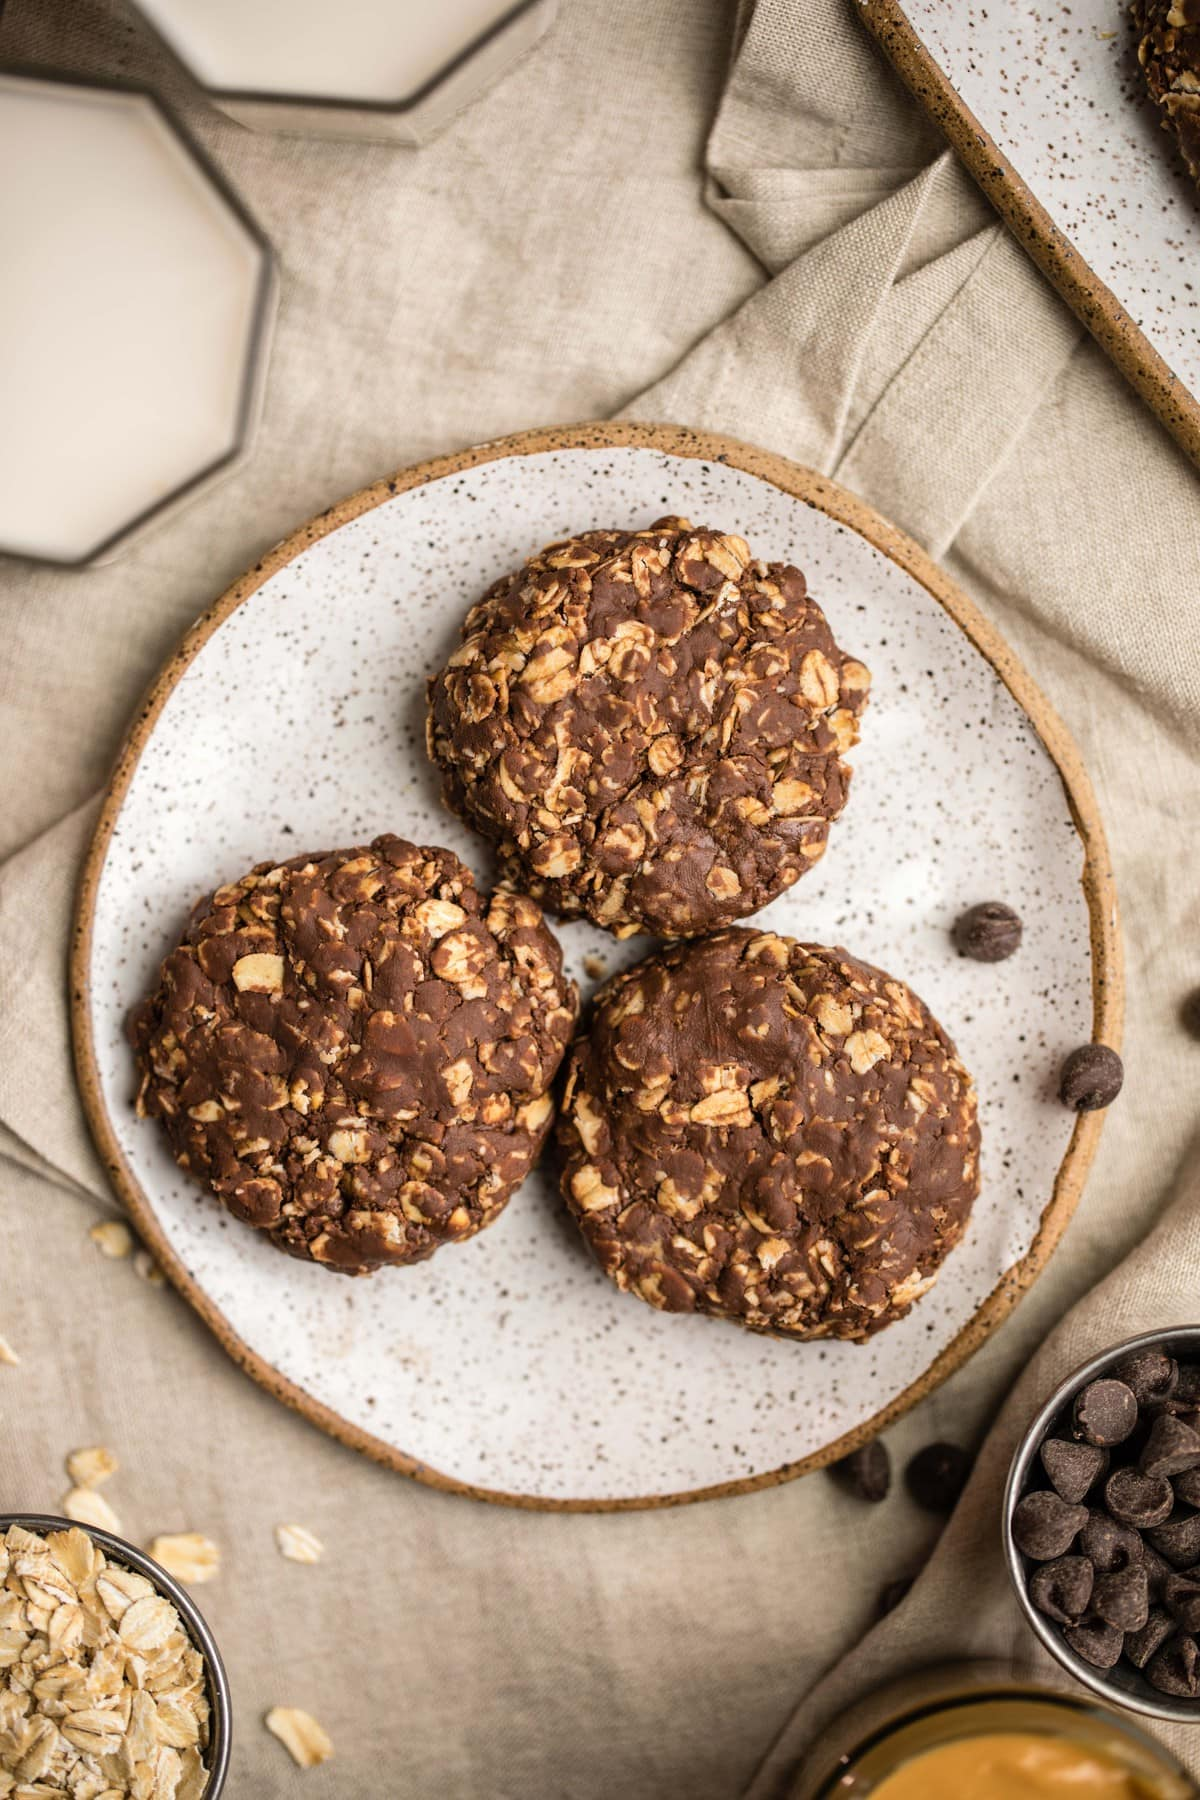 3 chocolate peanut butter cookies on white speckled plate with glass of milk